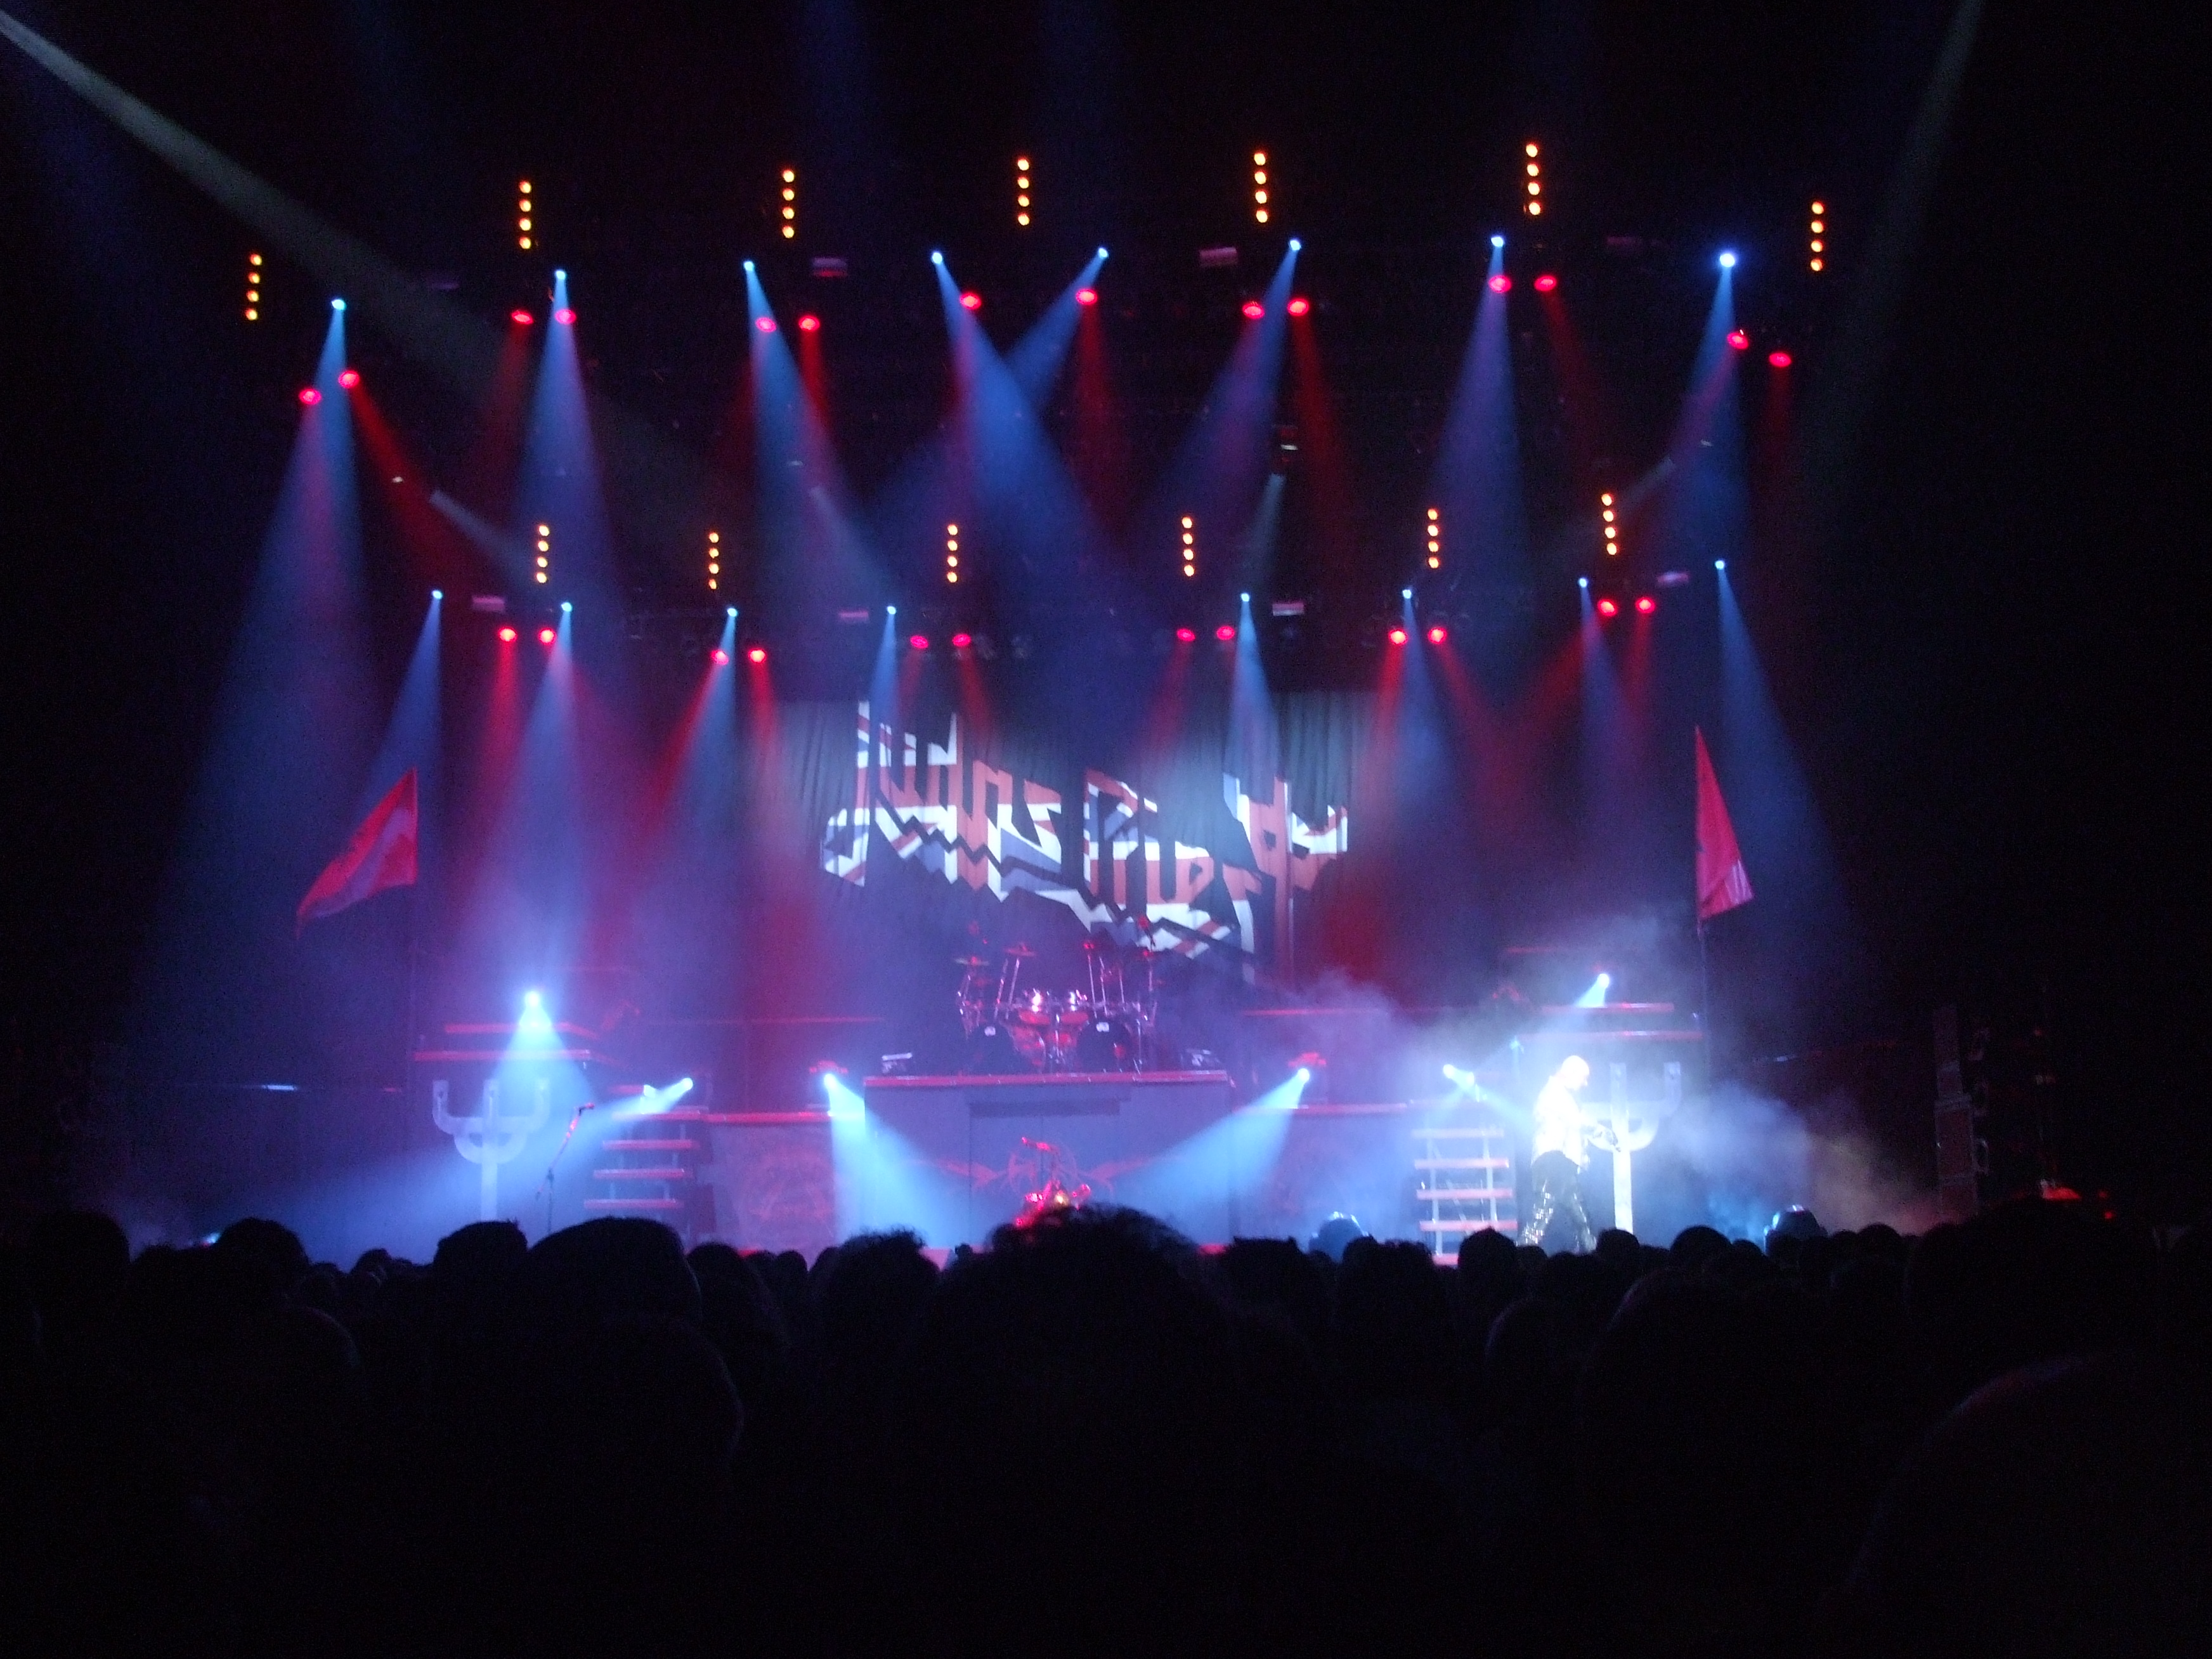 JUDAS PRIEST heavy metal concert f JPG wallpaper 3488x2616 163827 3488x2616